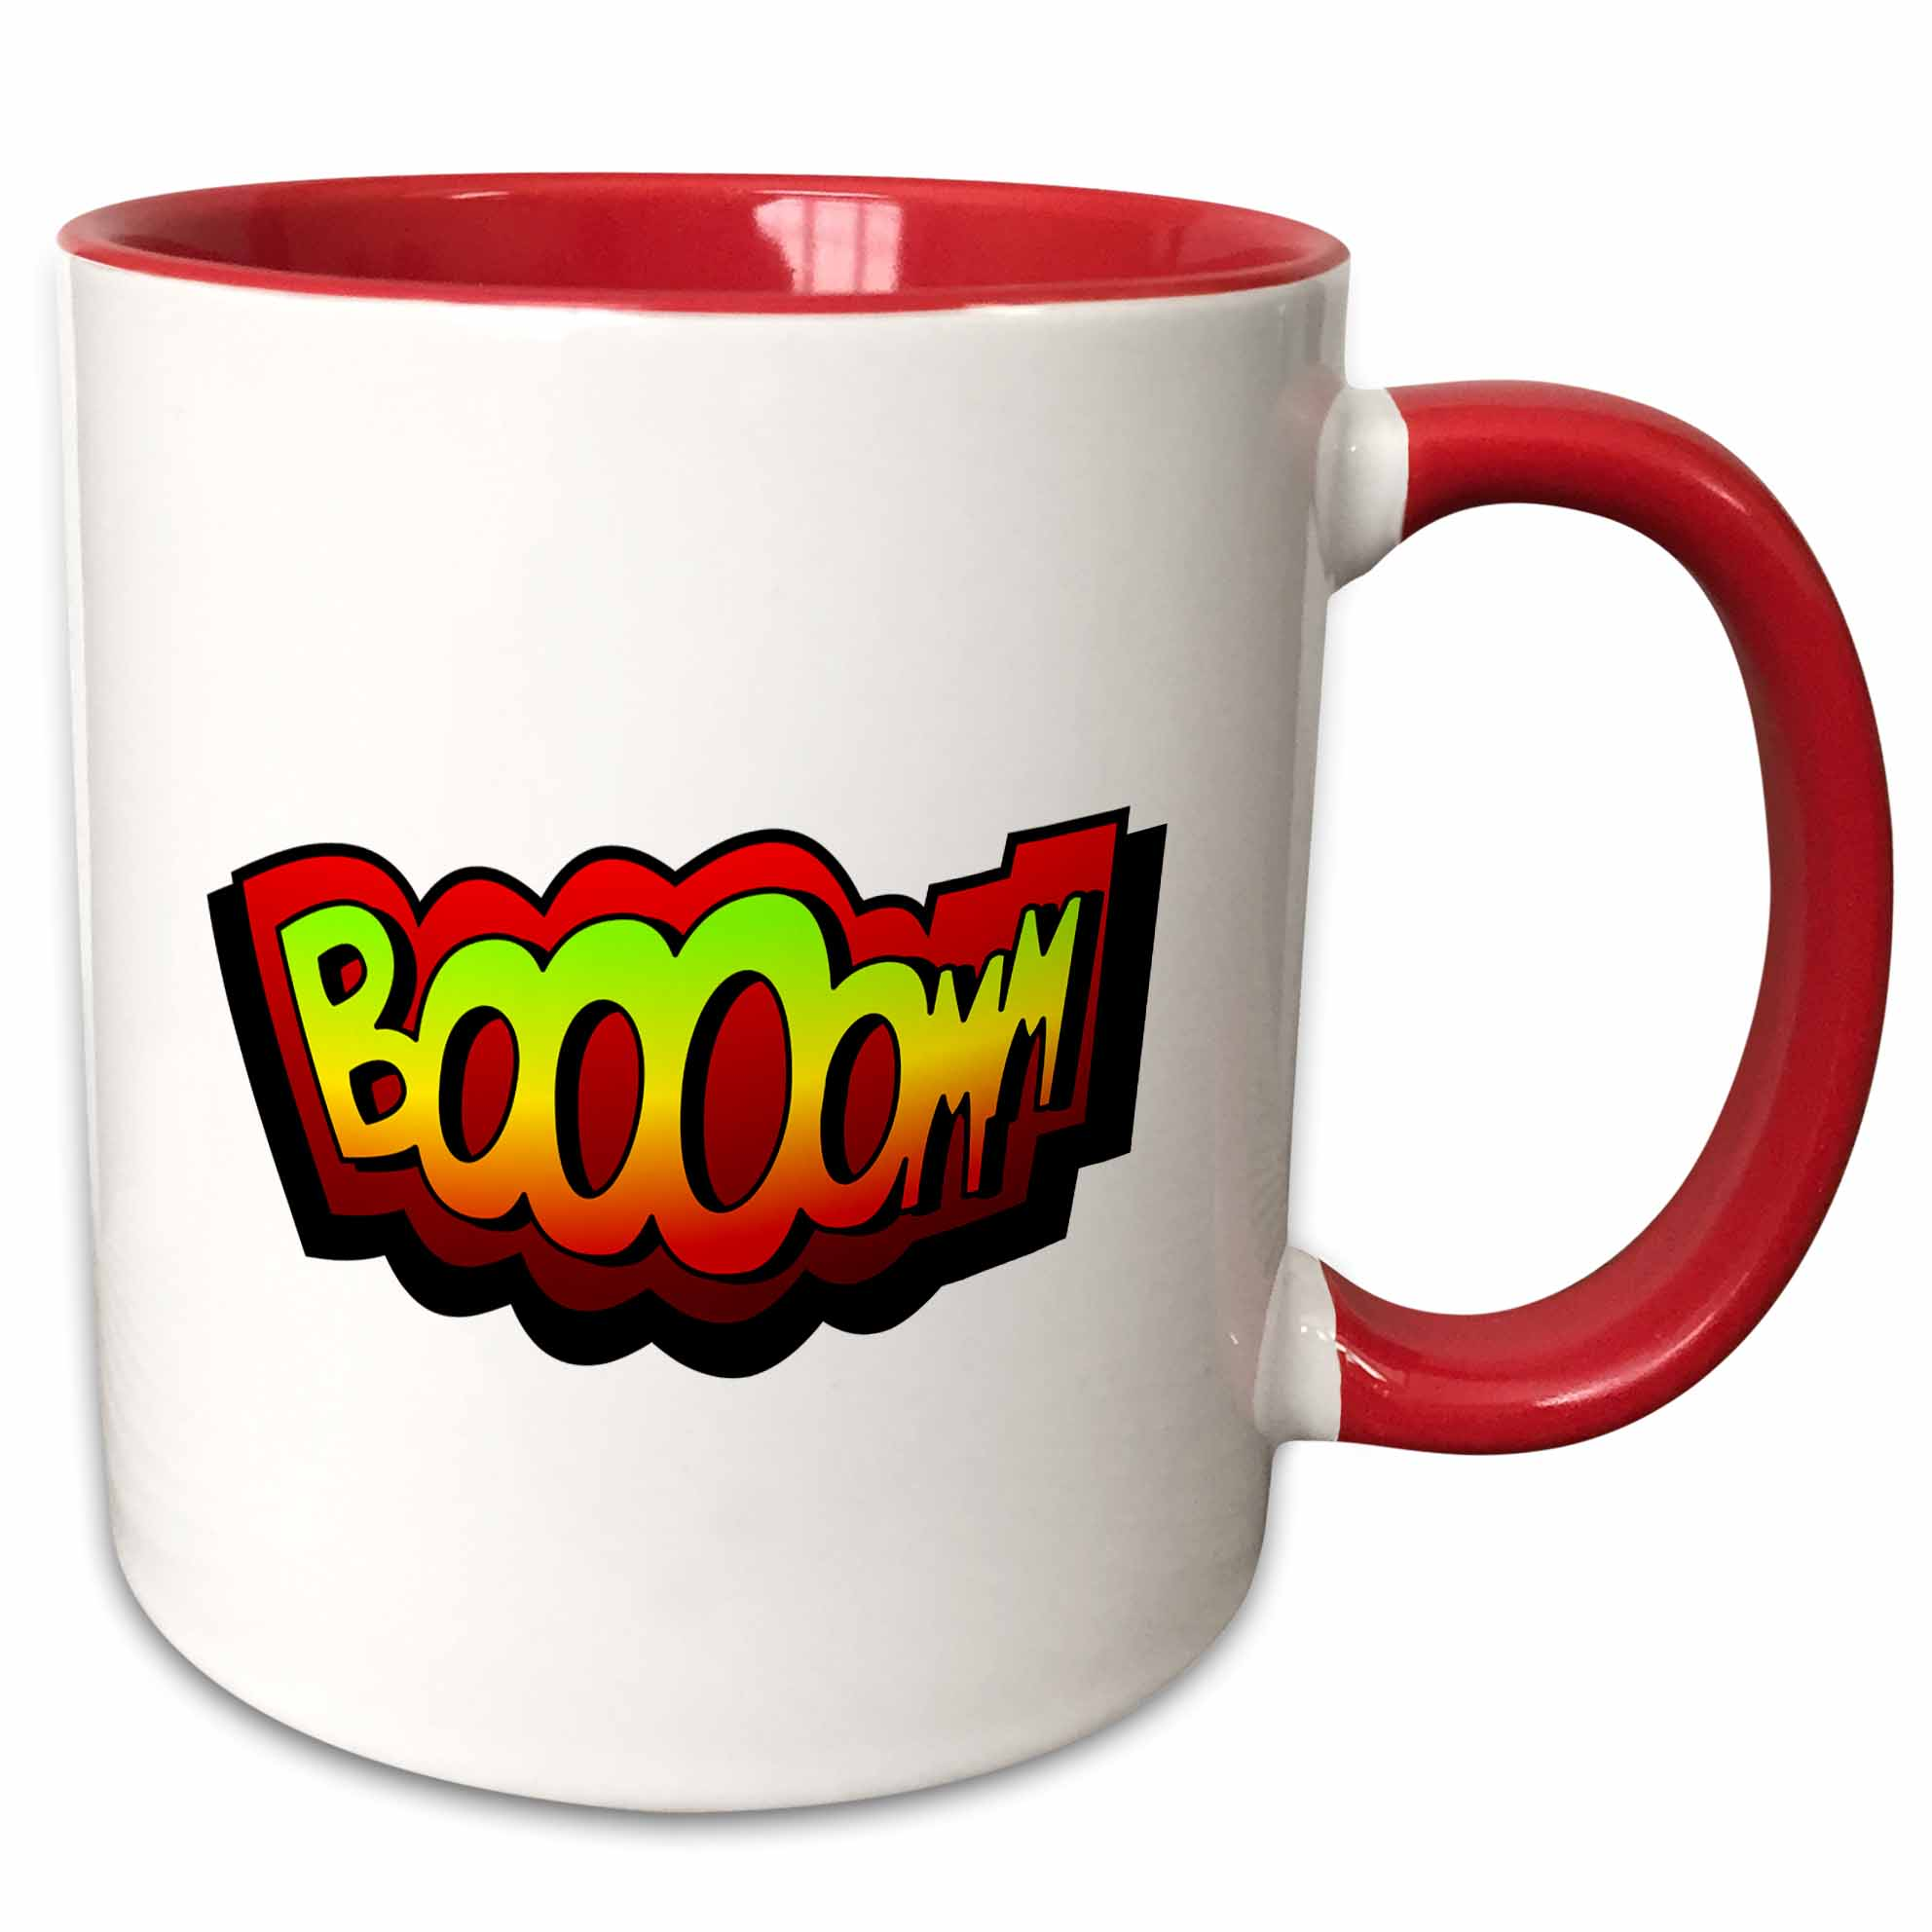 3dRose Super hero fight expression Boom fist fistfight superhero Booom Boooom explosion - Two Tone Red Mug, 11-ounce